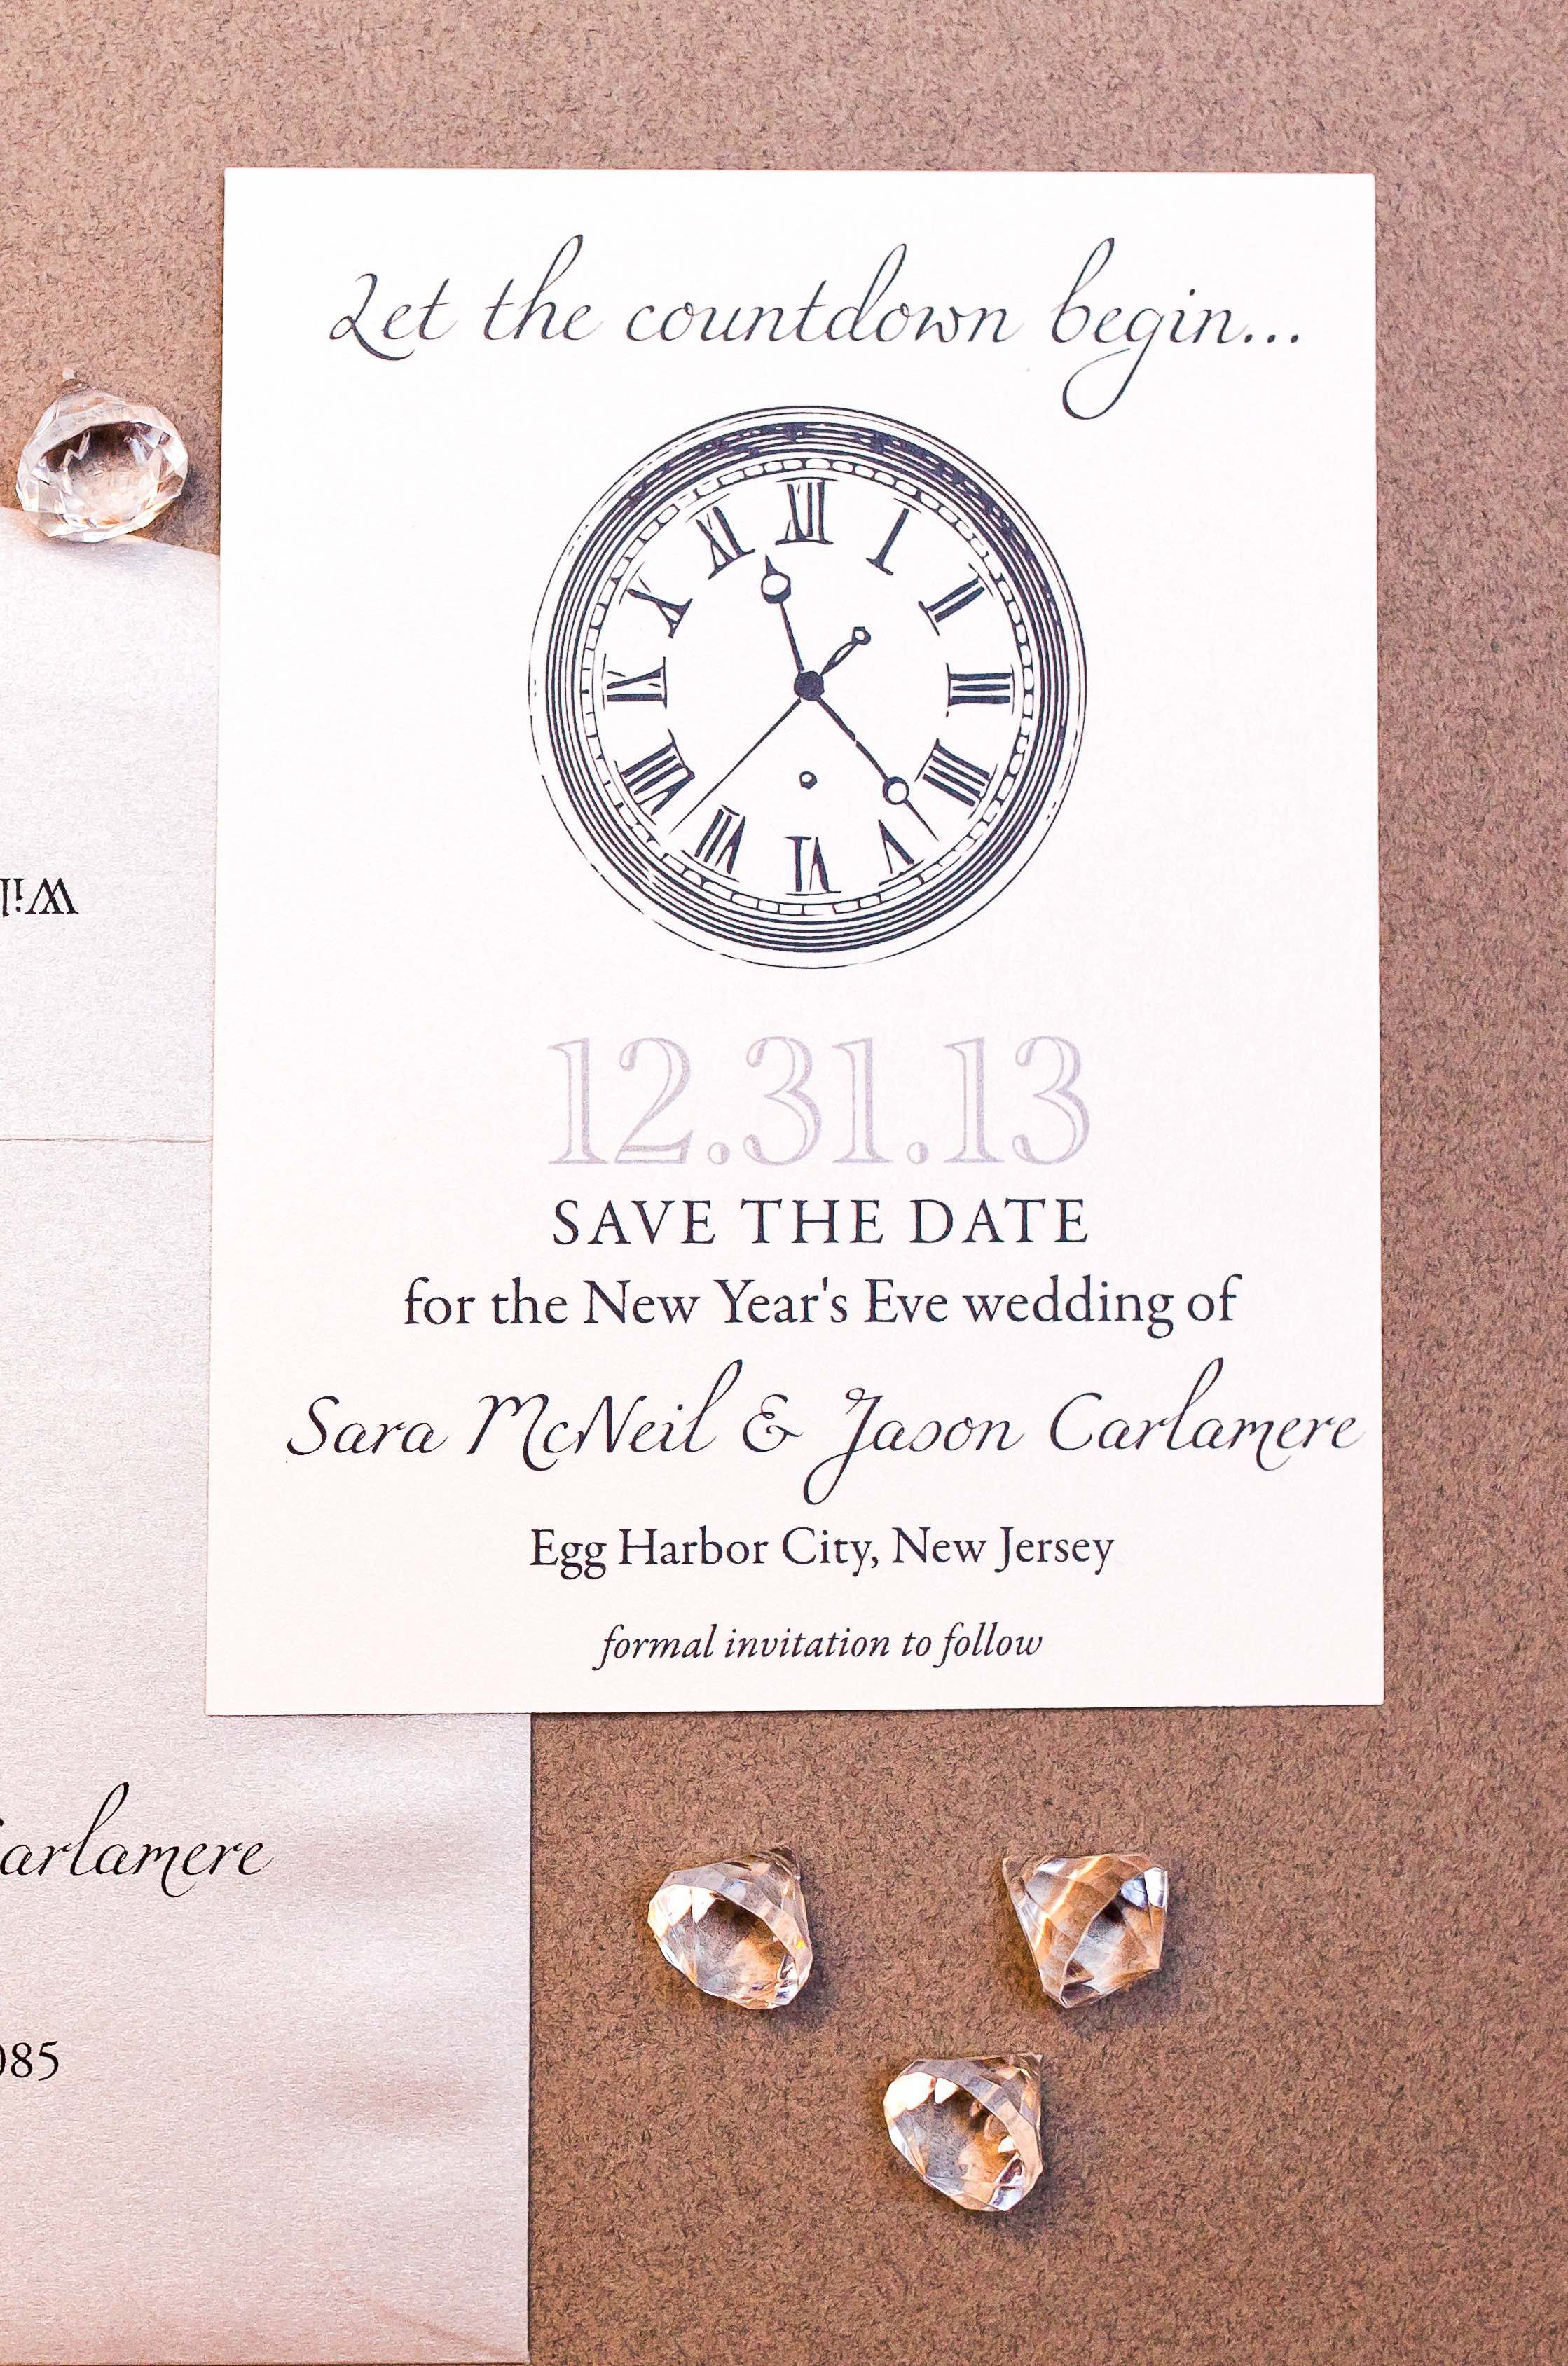 New Years Eve Wedding Save The Date Gourmet Invitations Wedding Saving Unique Wedding Invitation Wording Wedding Save The Dates